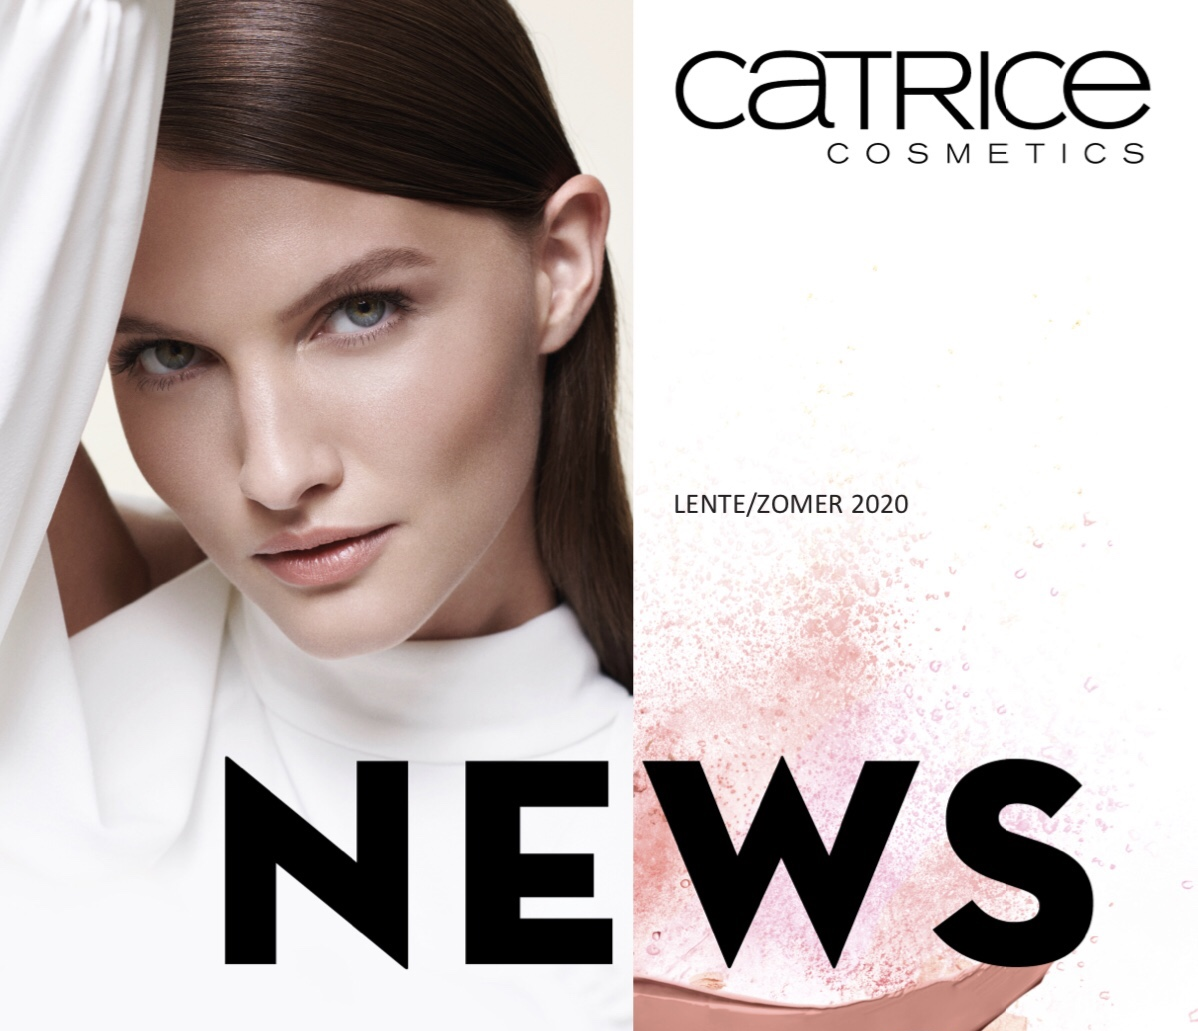 CATRICE ASSORTIMENT UPDATE LENTE/ ZOMER 2020